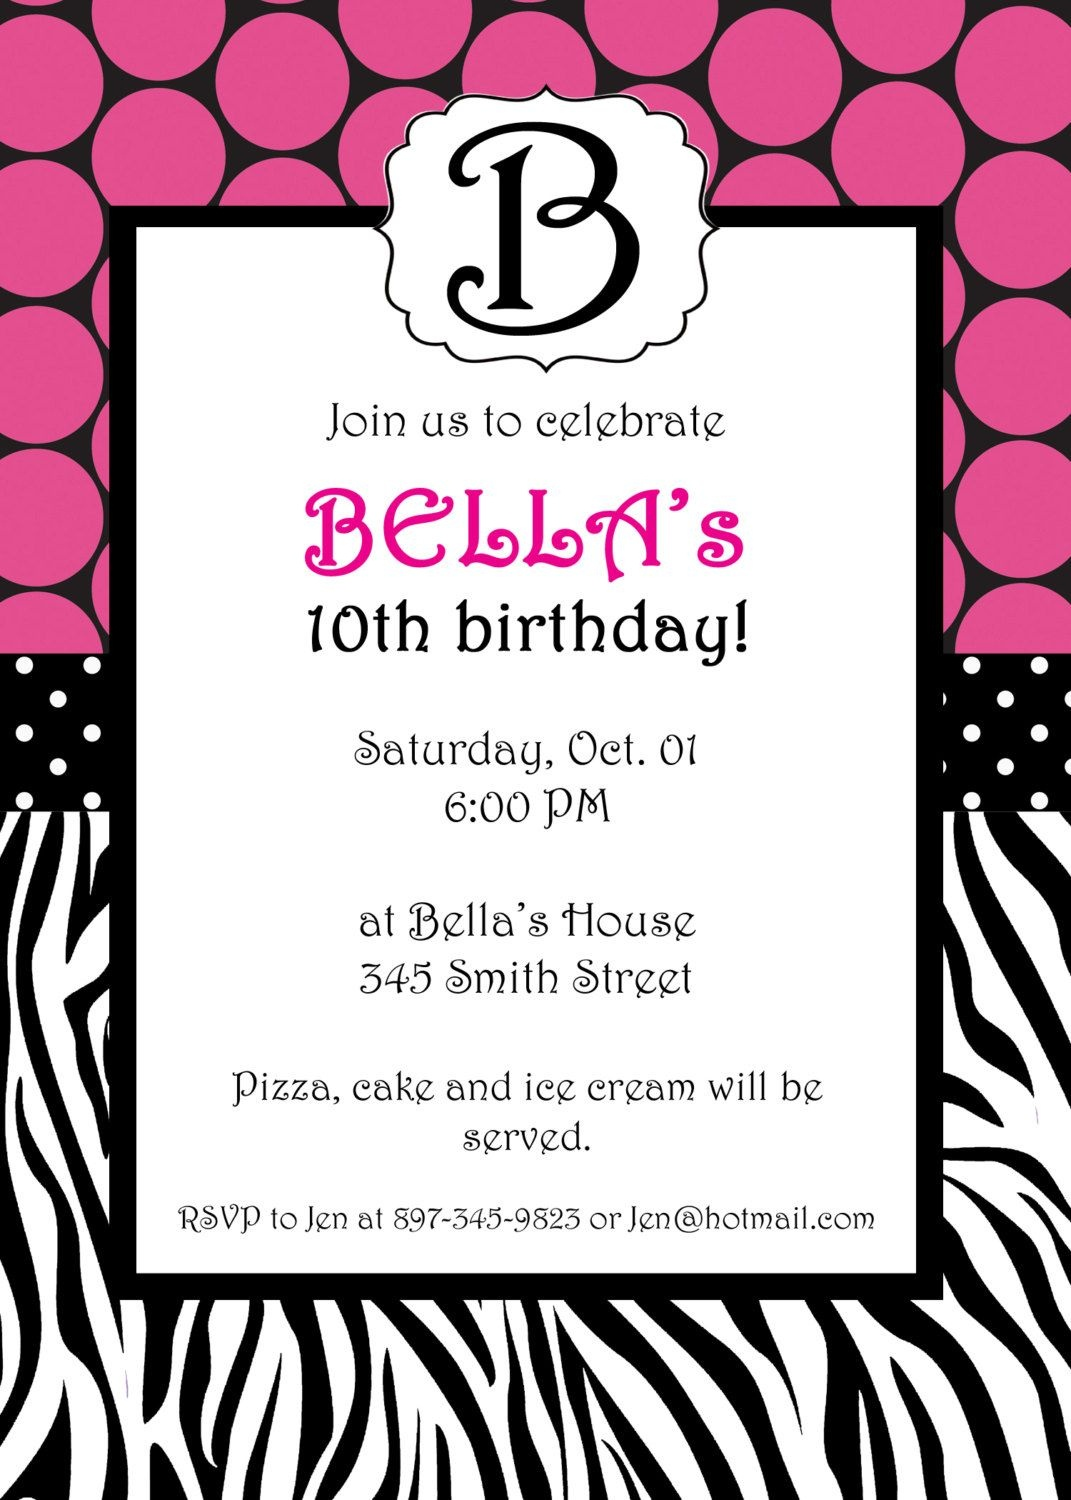 Free Printable Zebra Print Invitations Baby Shower | Emma | Free - Free Printable Zebra Print Birthday Invitations